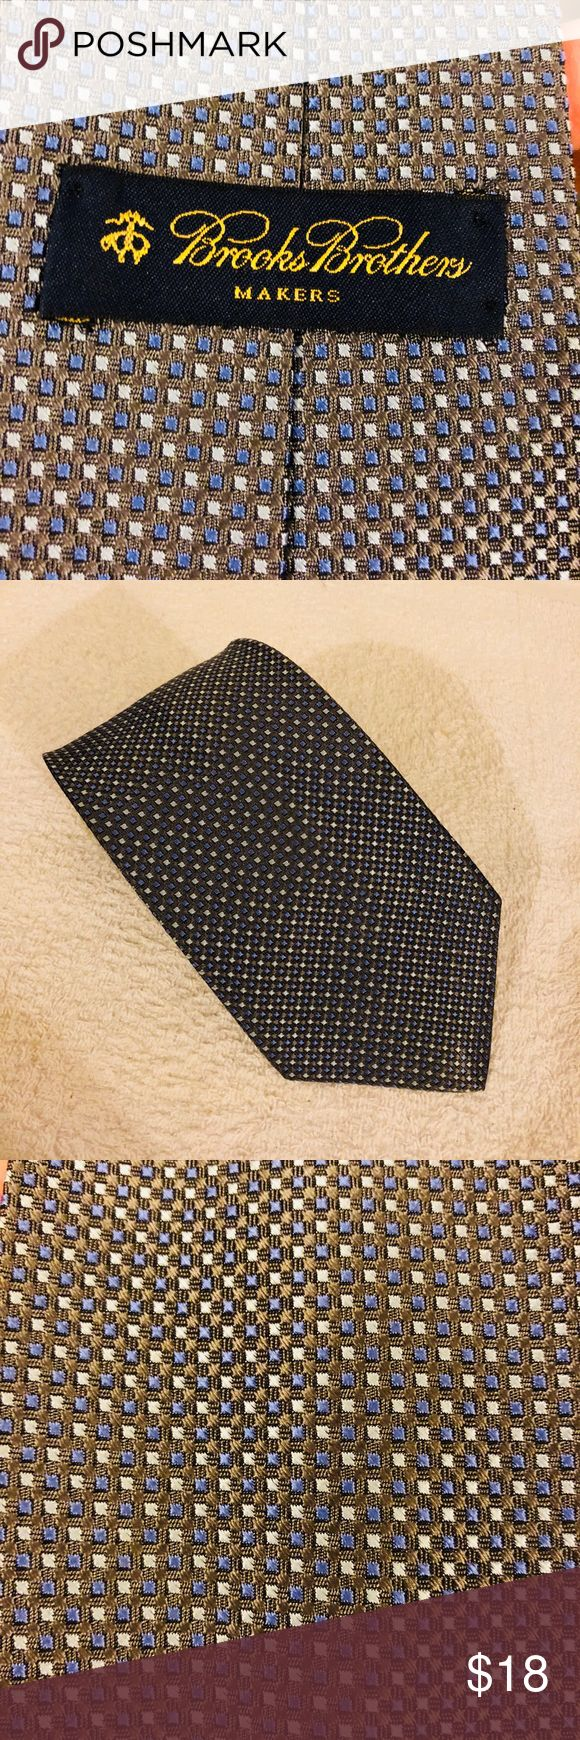 Brooks Brothers NEW Grey w/ Blue Check Silk Tie Brooks Brothers Grey With Blue and Light Grey Check Woven Silk Necktie! NEW WITHOUT TAGS! Please make reasonable offers and bundle! Ask questions! Brooks Brothers Accessories Ties